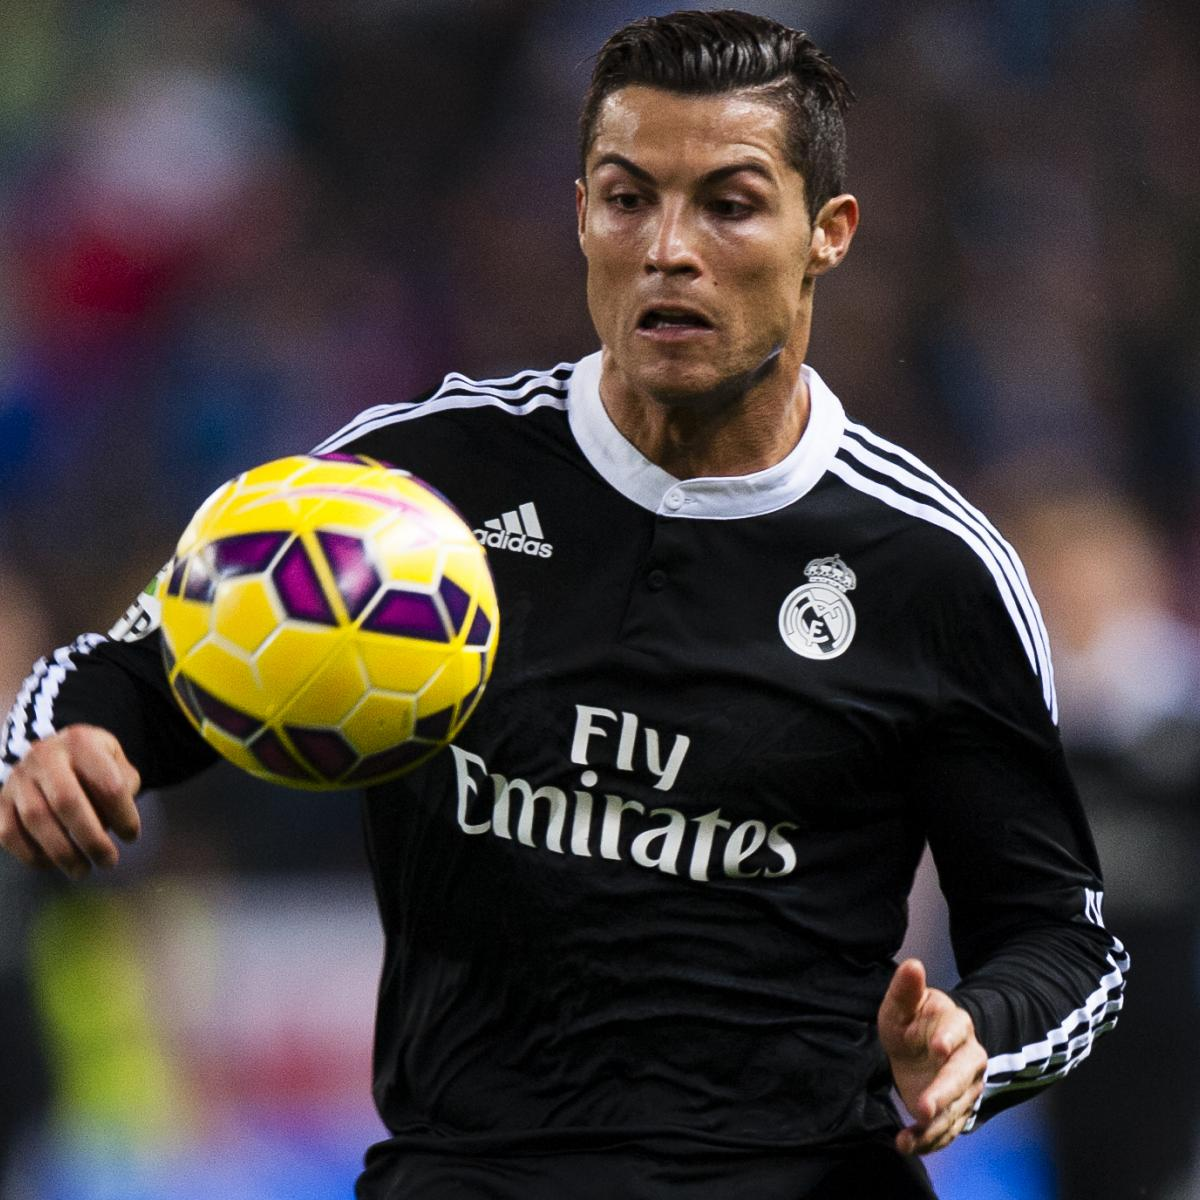 Cristiano Ronaldo S 4 Goals Lead Real Madrid To Win Vs: Cristiano Ronaldo Among Star-Studded List Rested By Real